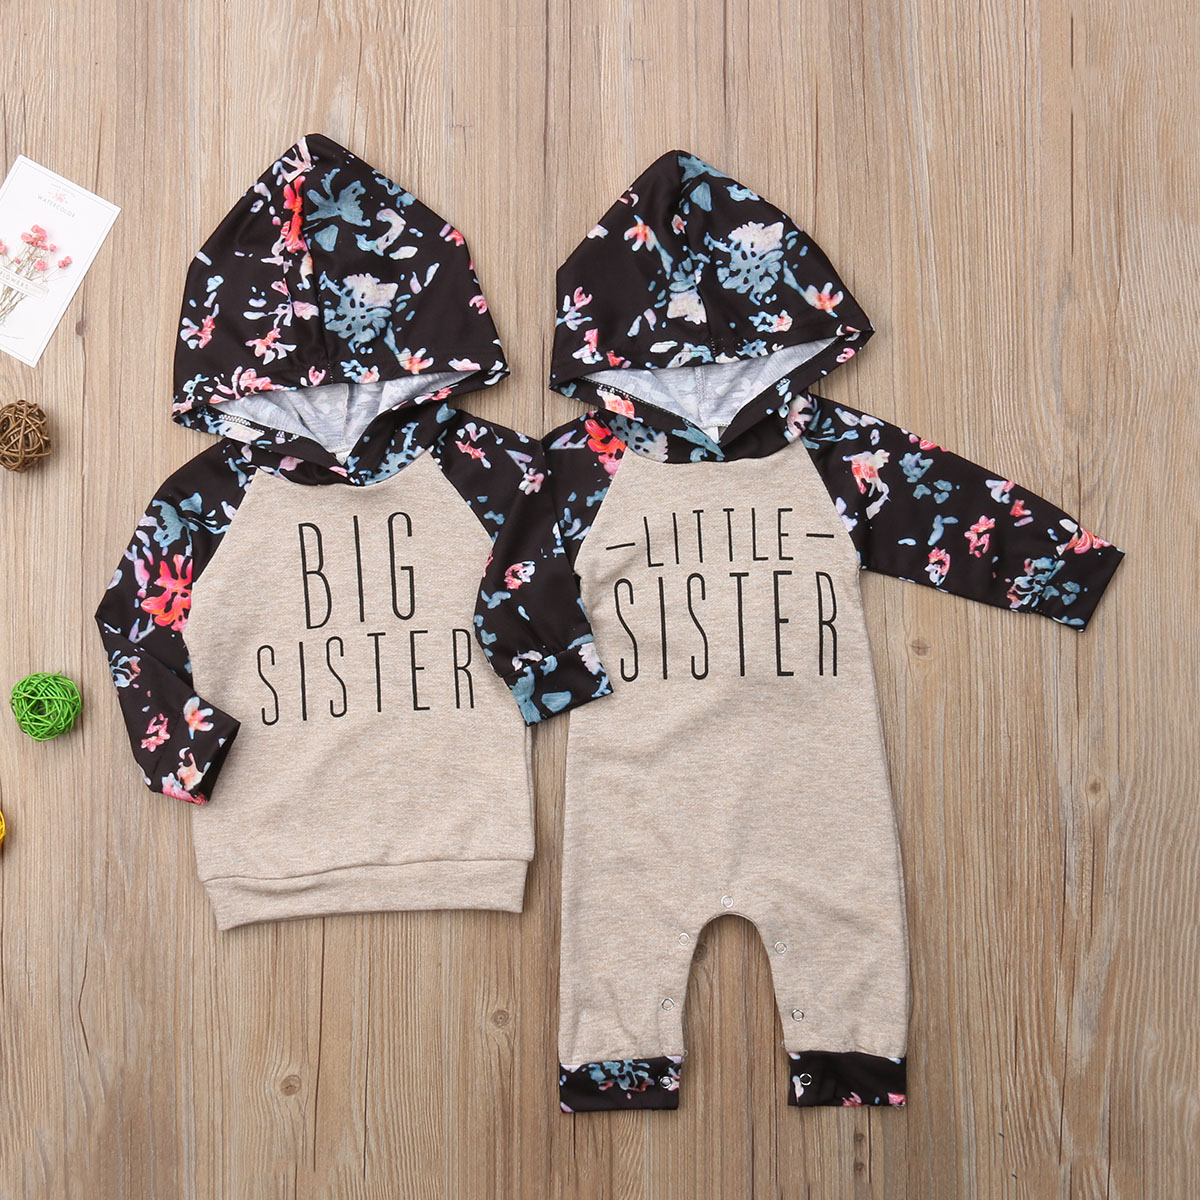 Little Sister Big Sister Match Clothes Kids Hooded Sweatshirt Baby Girl Romper and Hoodie Top цены онлайн